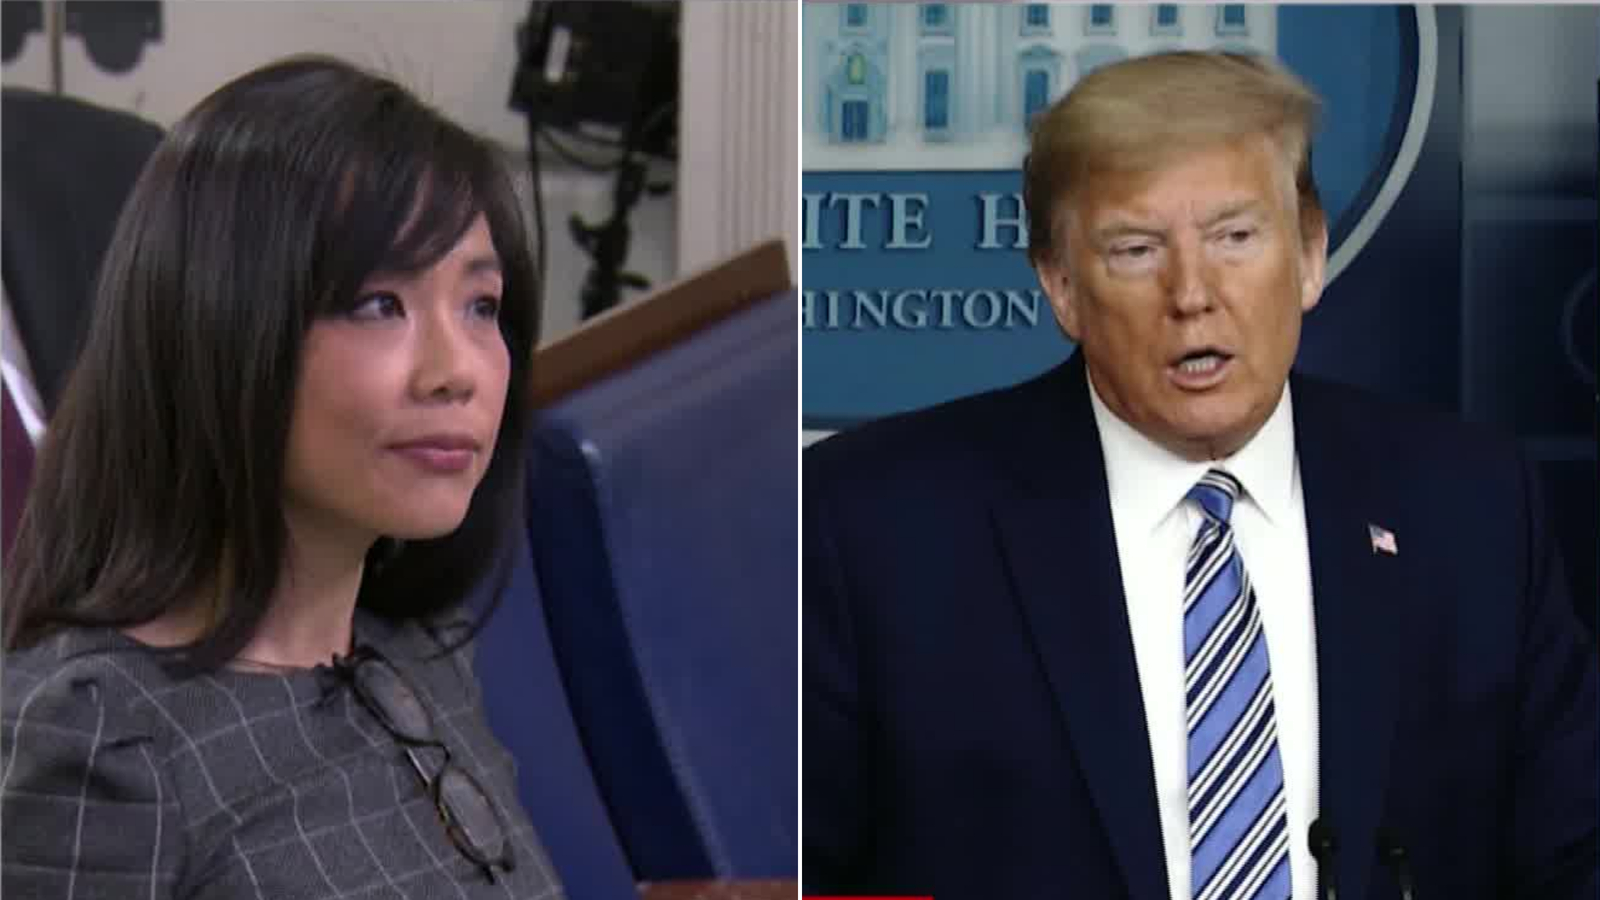 'Ask China': Trump abruptly ends coronavirus briefing after reporter questions his response